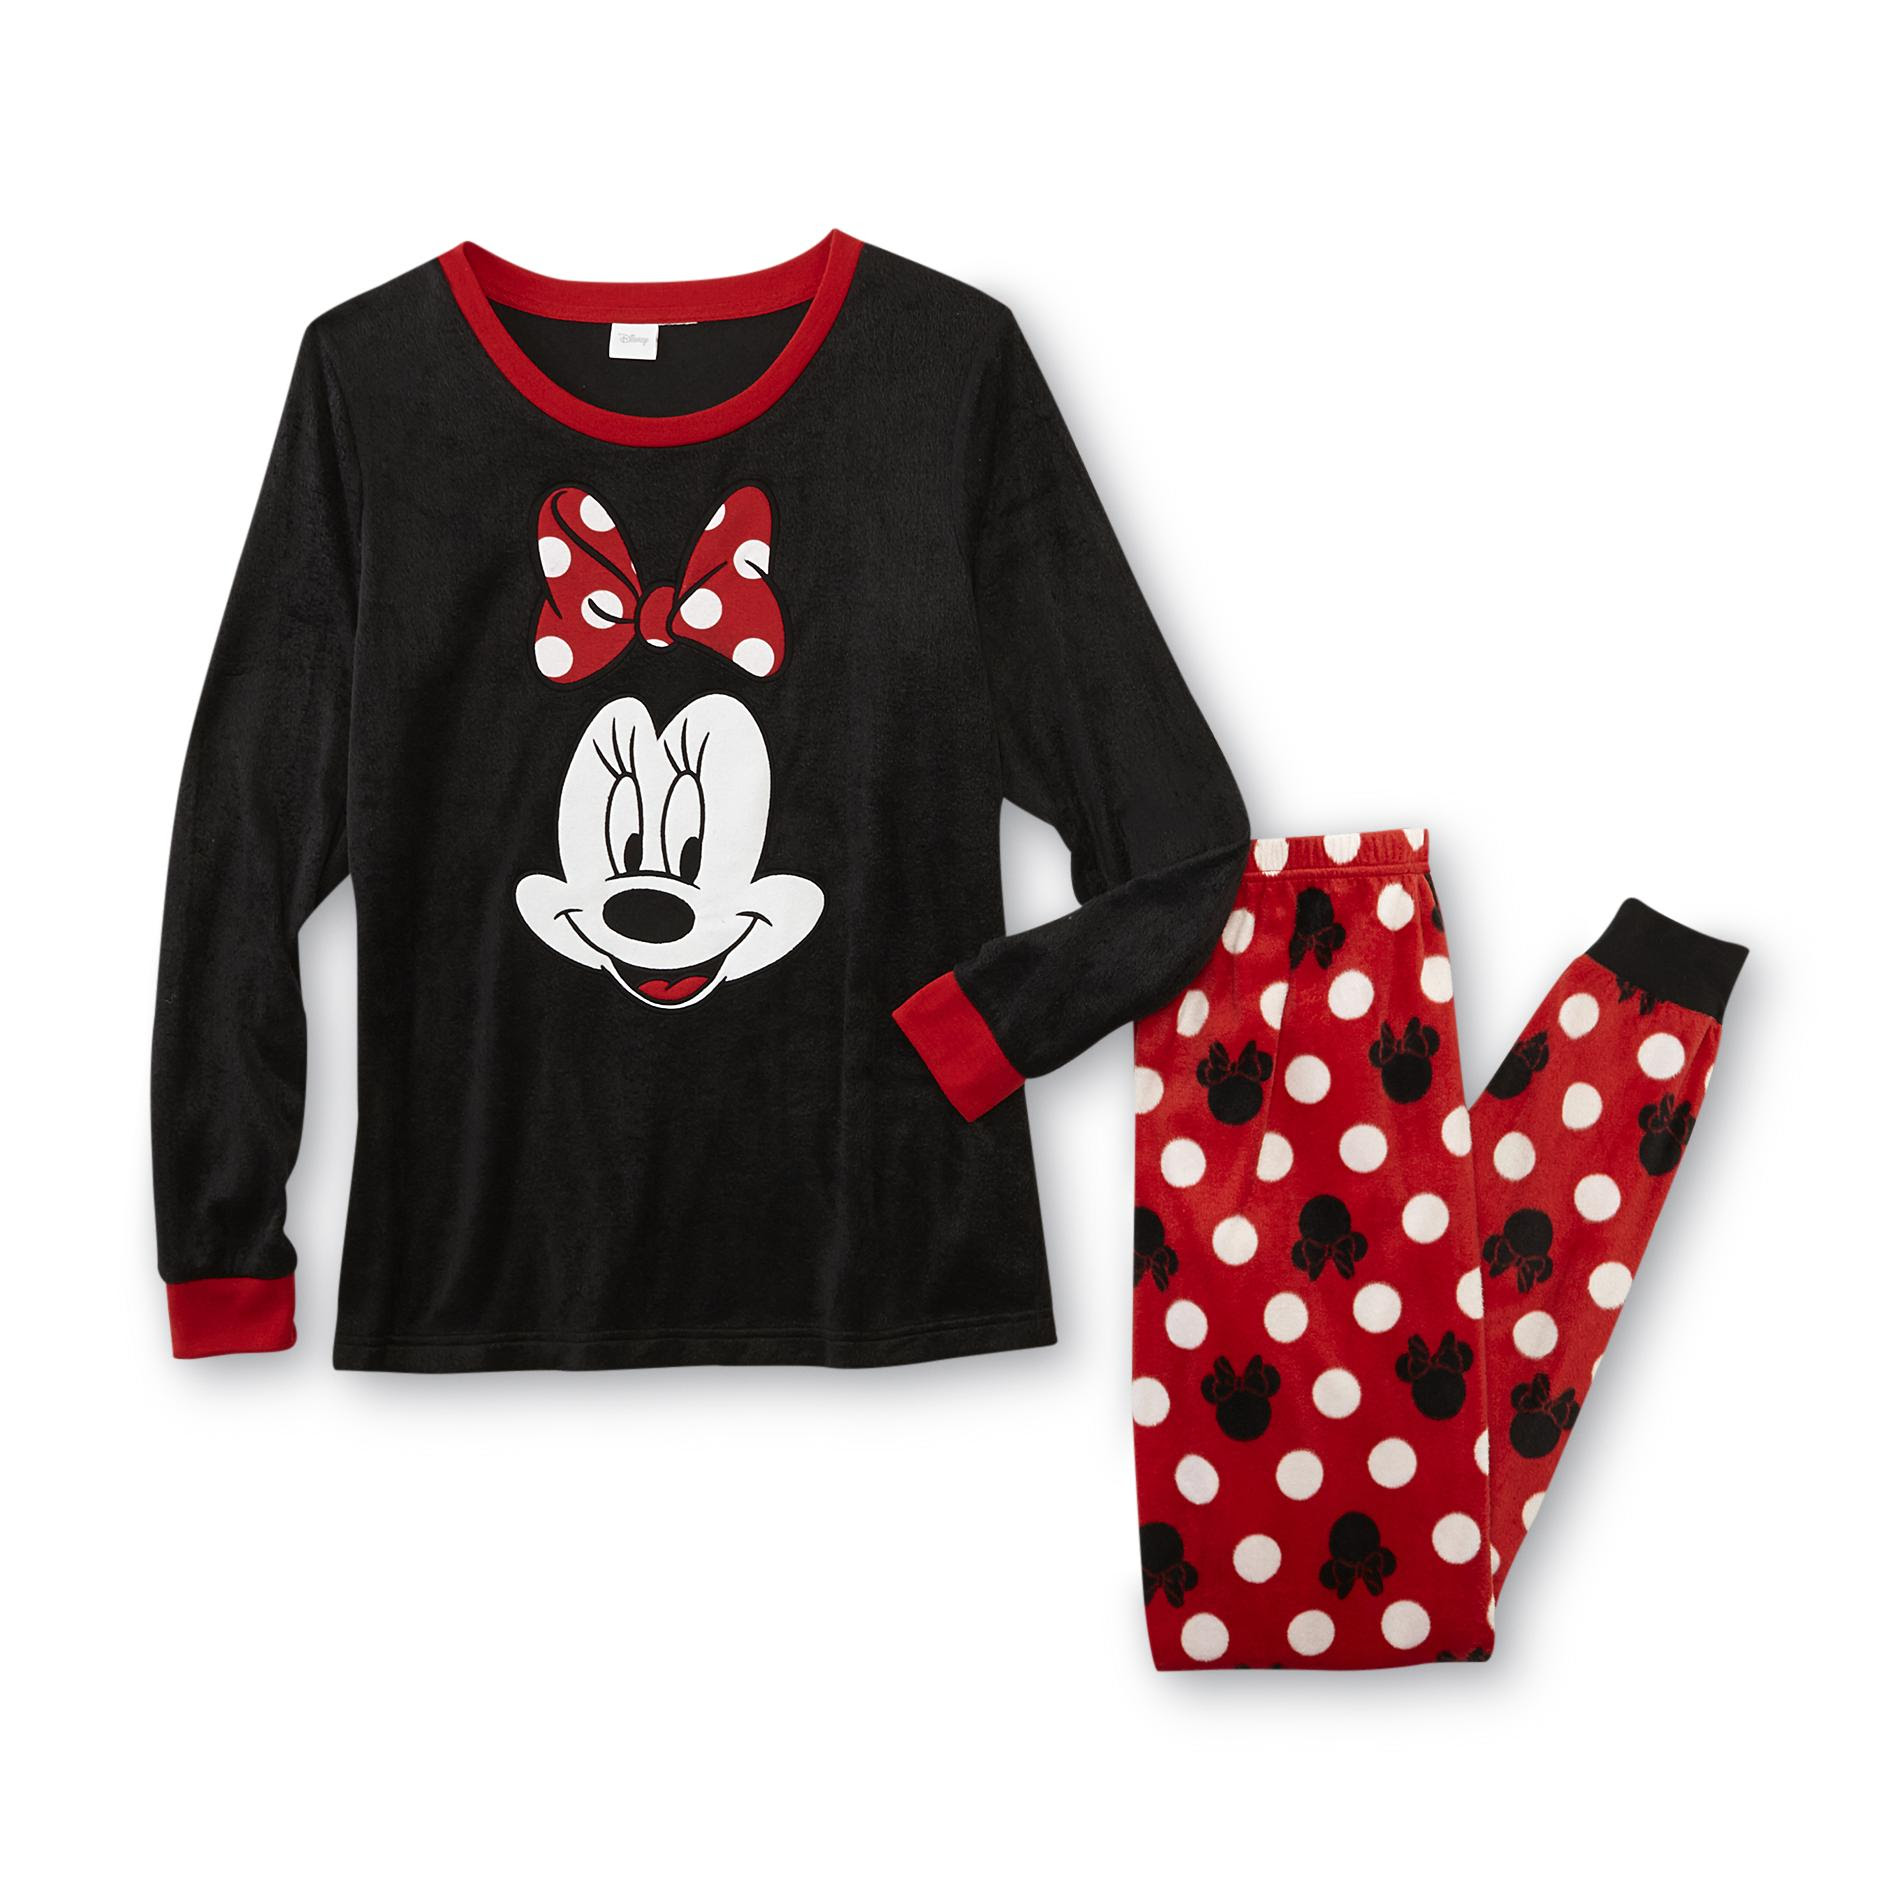 disney minnie mouse women's pajama top  pants  clothing